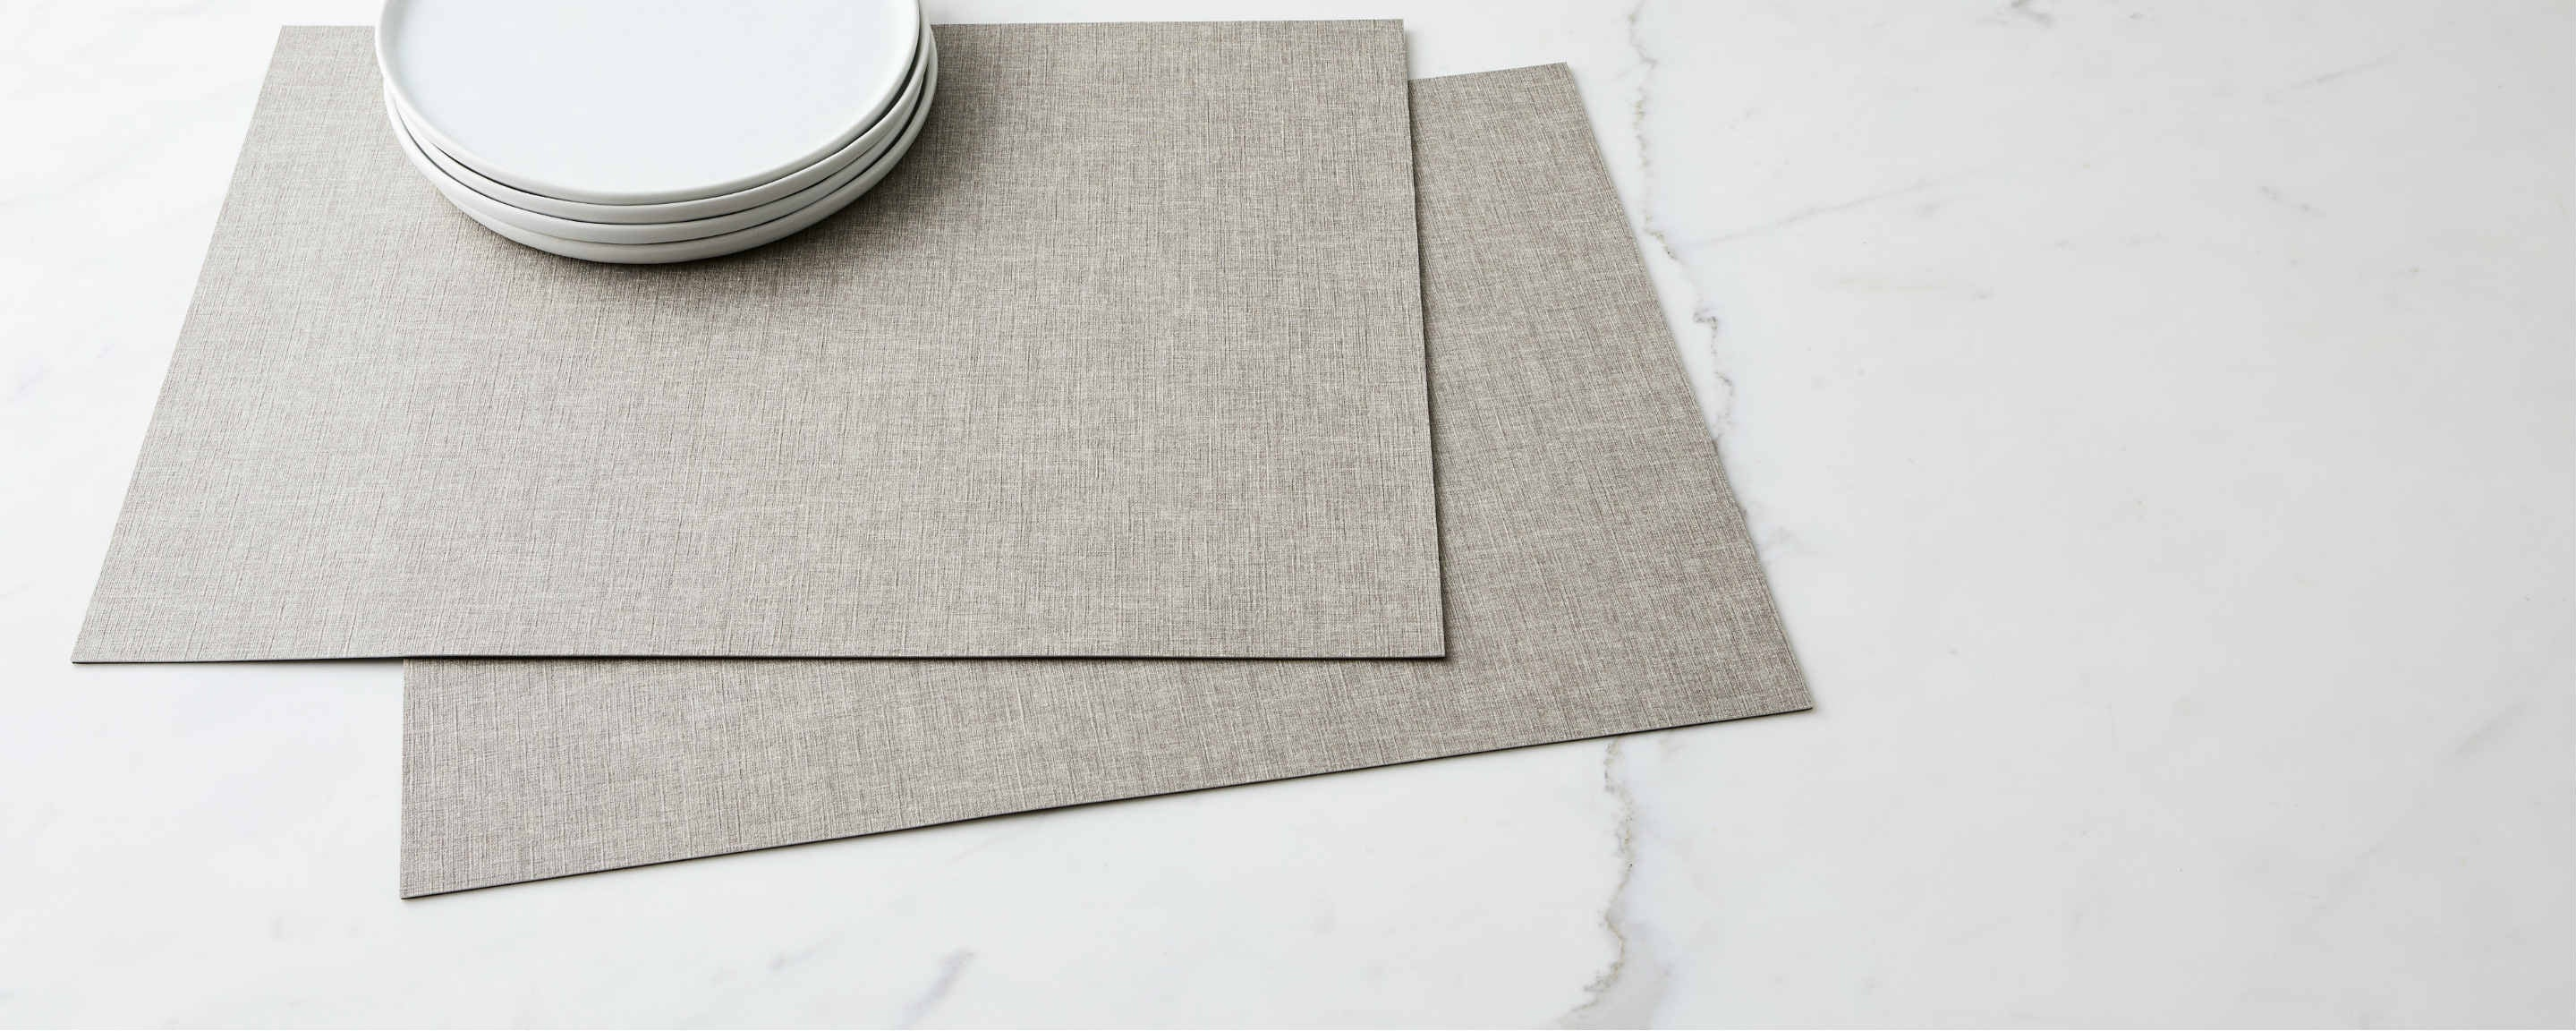 textured iron placemat